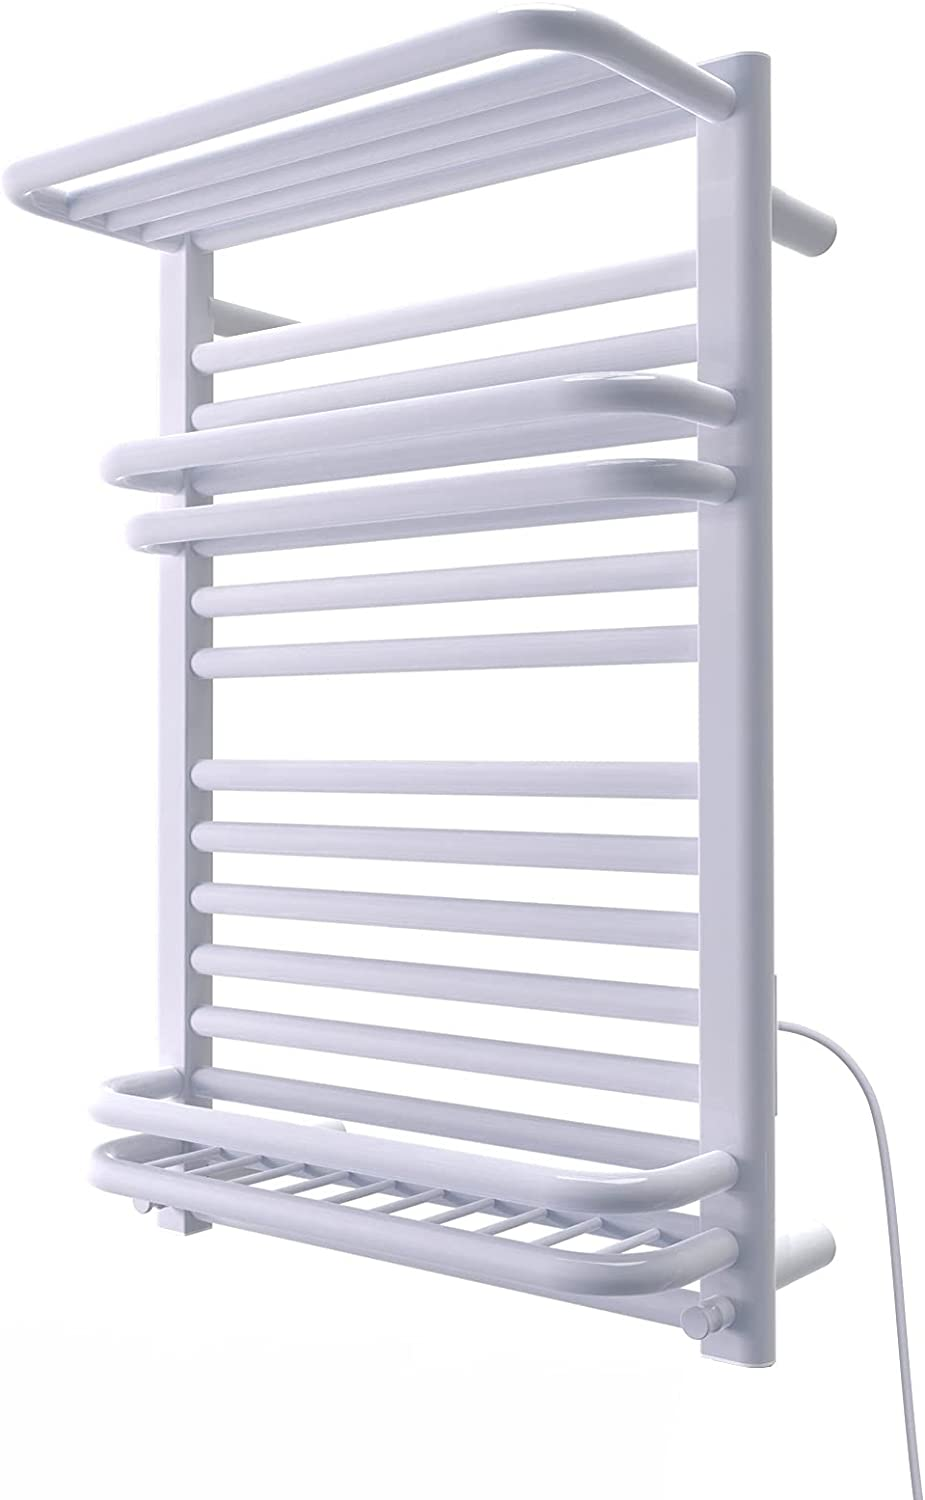 MOPO New Free Max 90% OFF Shipping Heated Towel Warmer Carbon Electric15 Stainless Steel Fibre